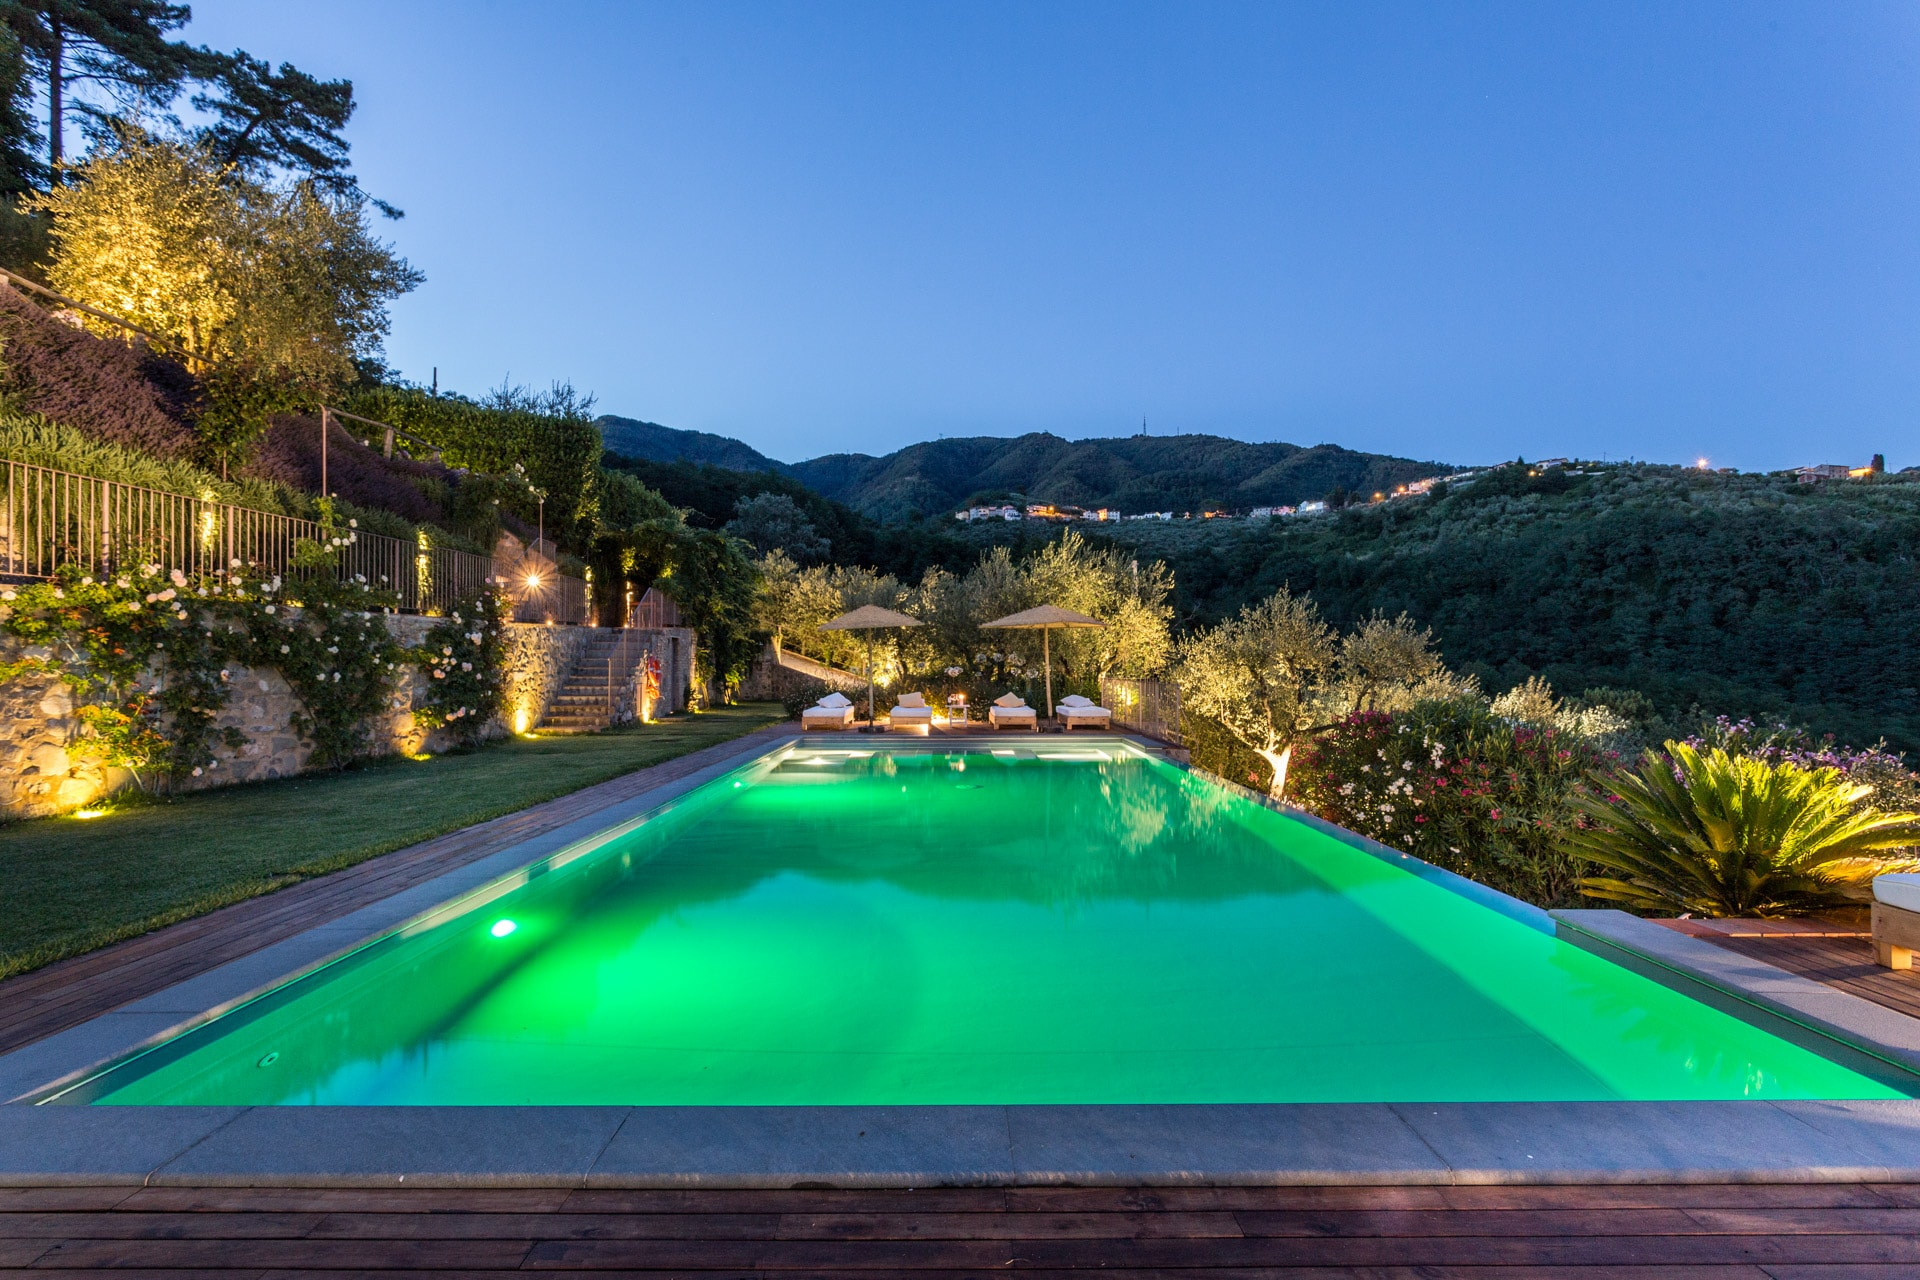 Property Image 2 - Hilltop Enchanting Farmhouse with Infinity Pool